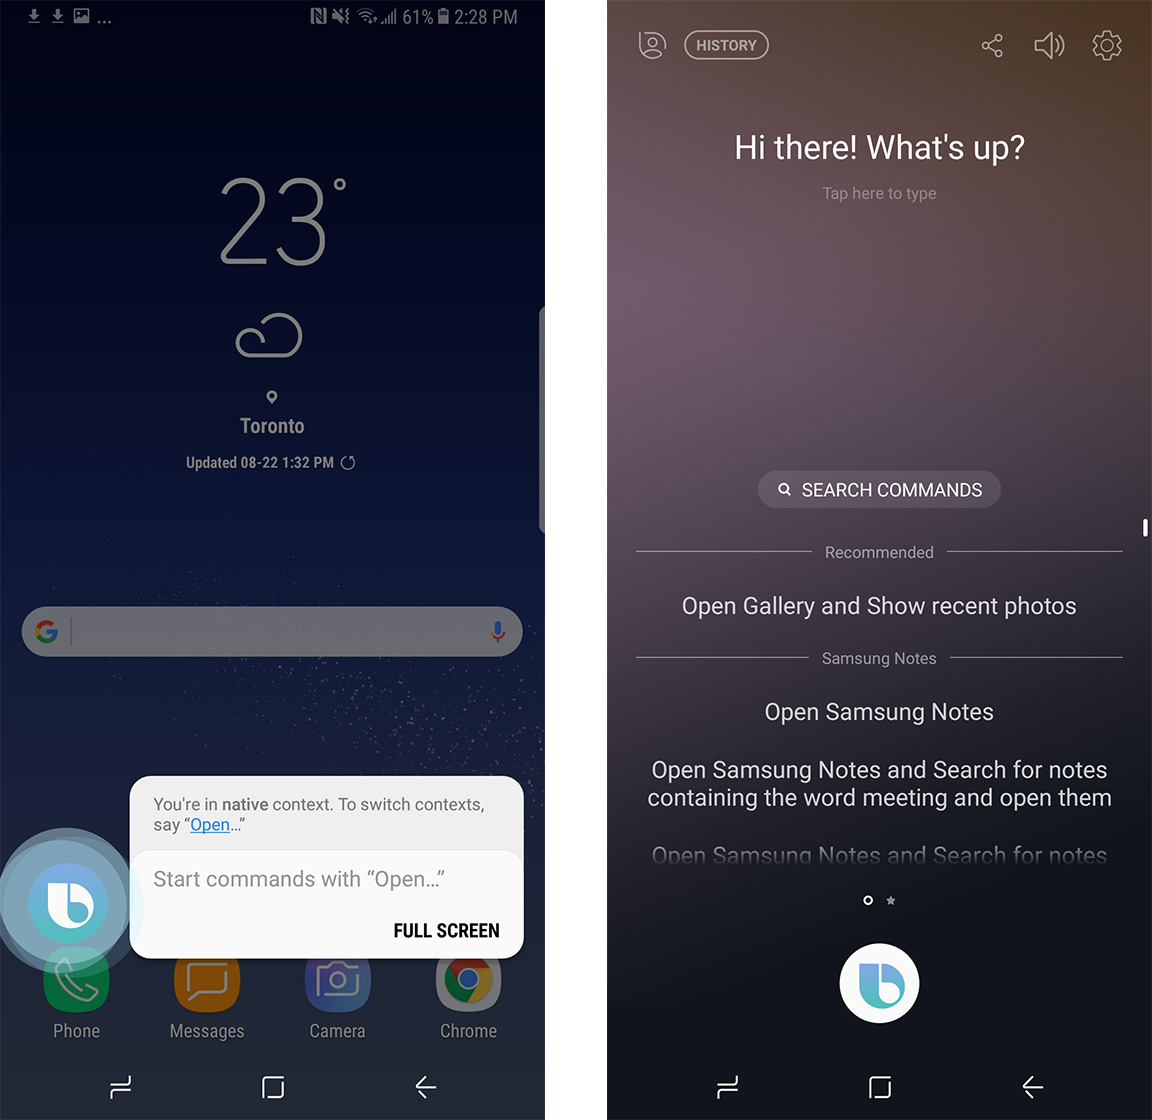 An image showing what Bixby's virtual assistant view looks like